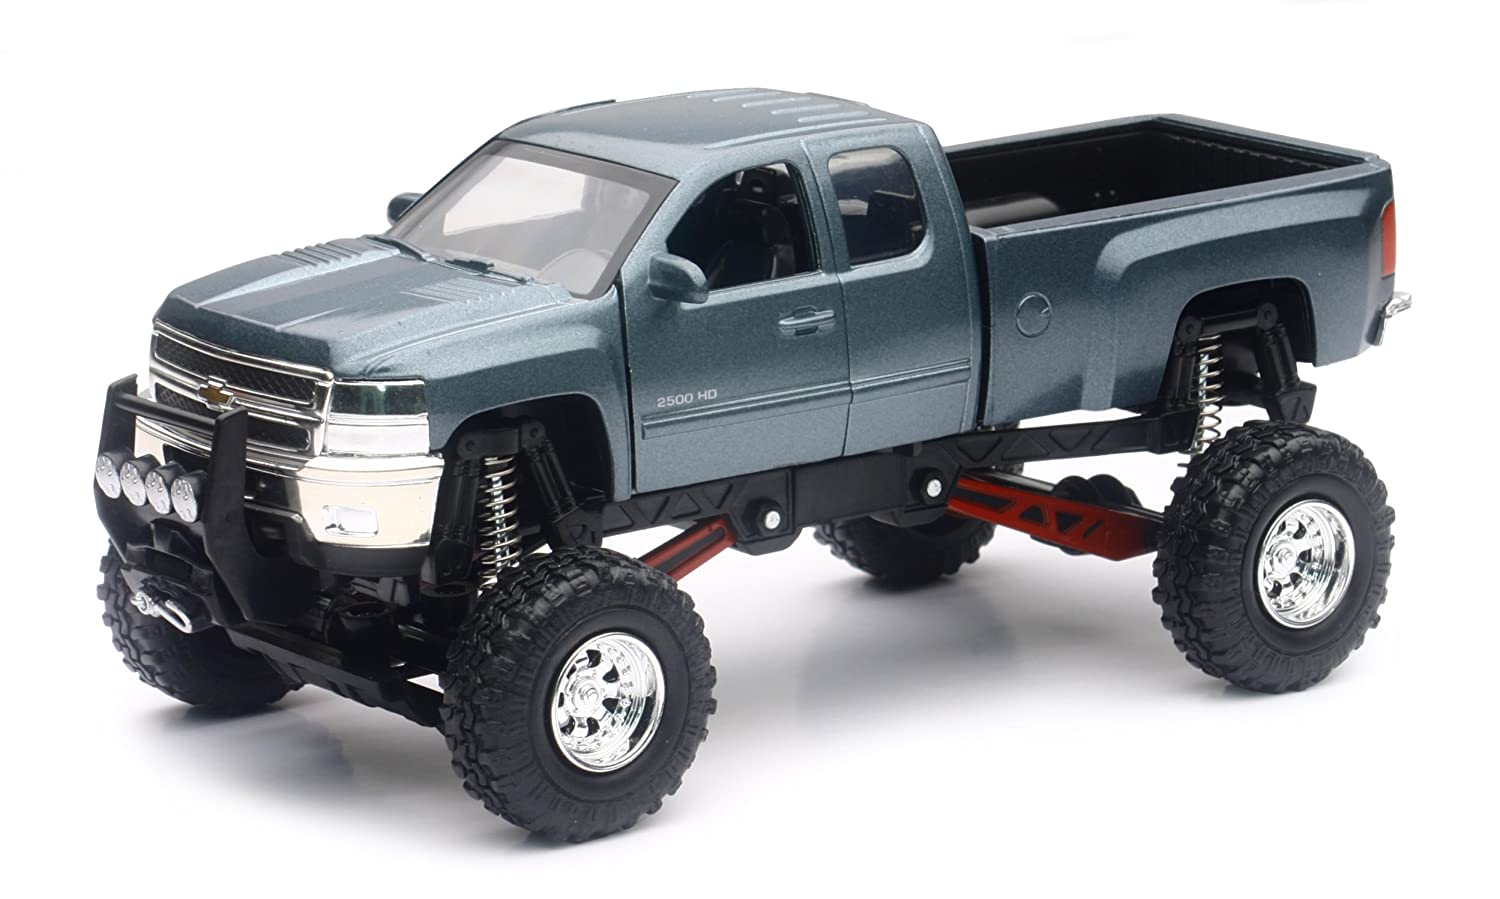 New Ray Silverado 2500 Hd Die Cast Chevrolet with Suspension 1//32/° 54526 Blue new ray france sarl